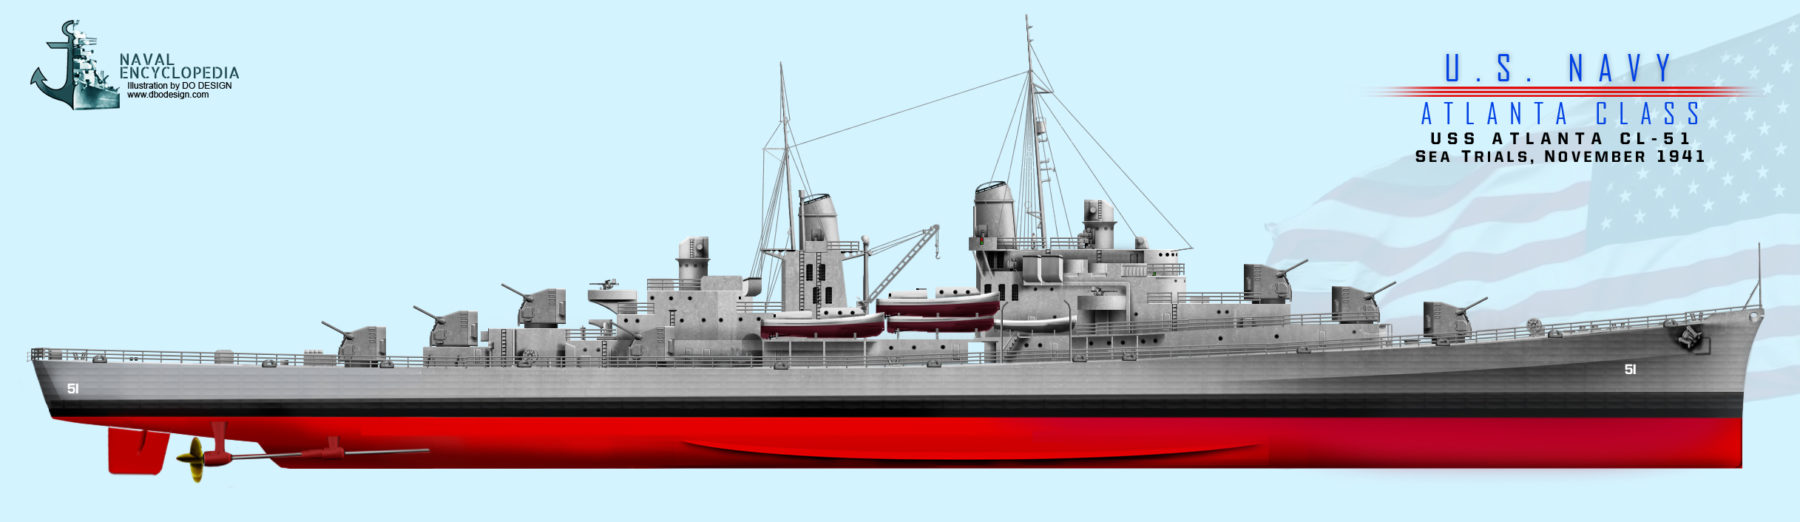 USS Indianapolis as built, before commission